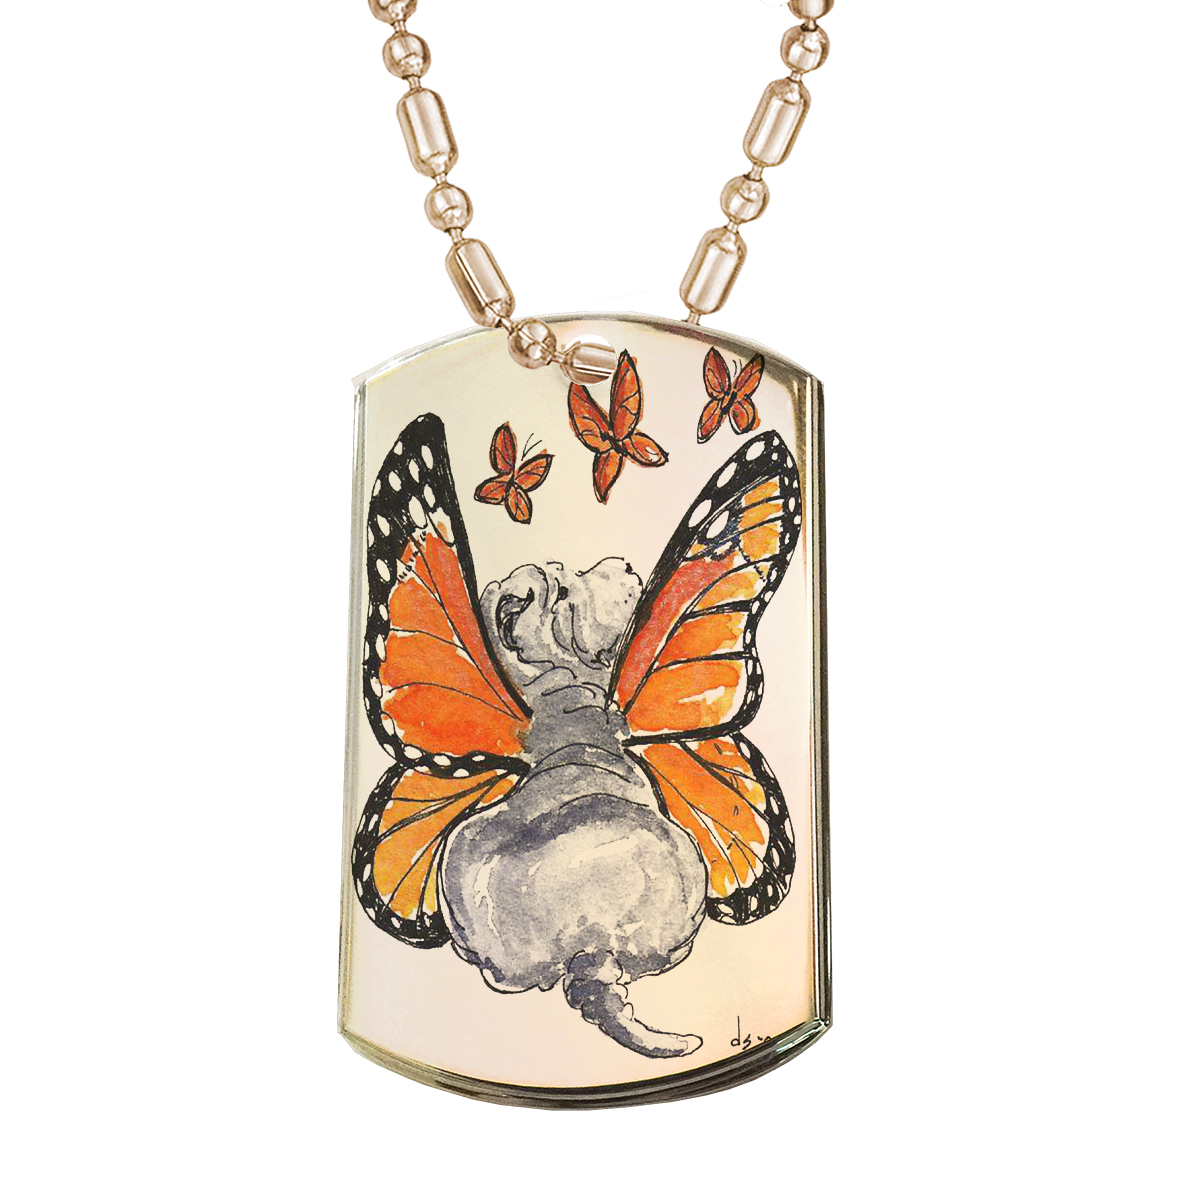 KuzmarK Gold Pendant Dog Tag Necklace - Blue Chinese Shar-Pei Puppy Monarch Butterfly Fairy Dog Art by Denise Every Gold Dog Tag Necklace